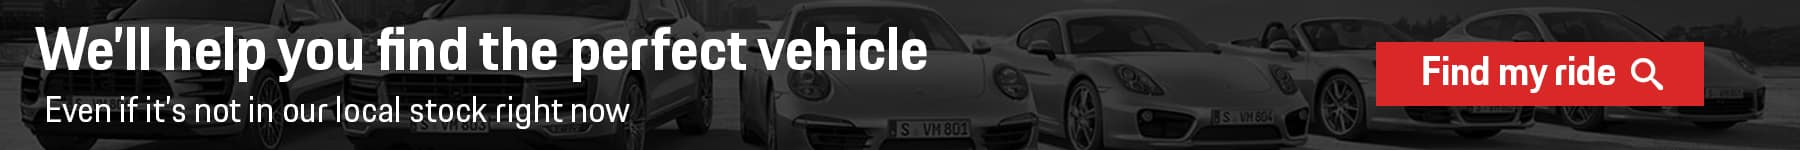 Find the perfect vehicle even if it's not in our local stock